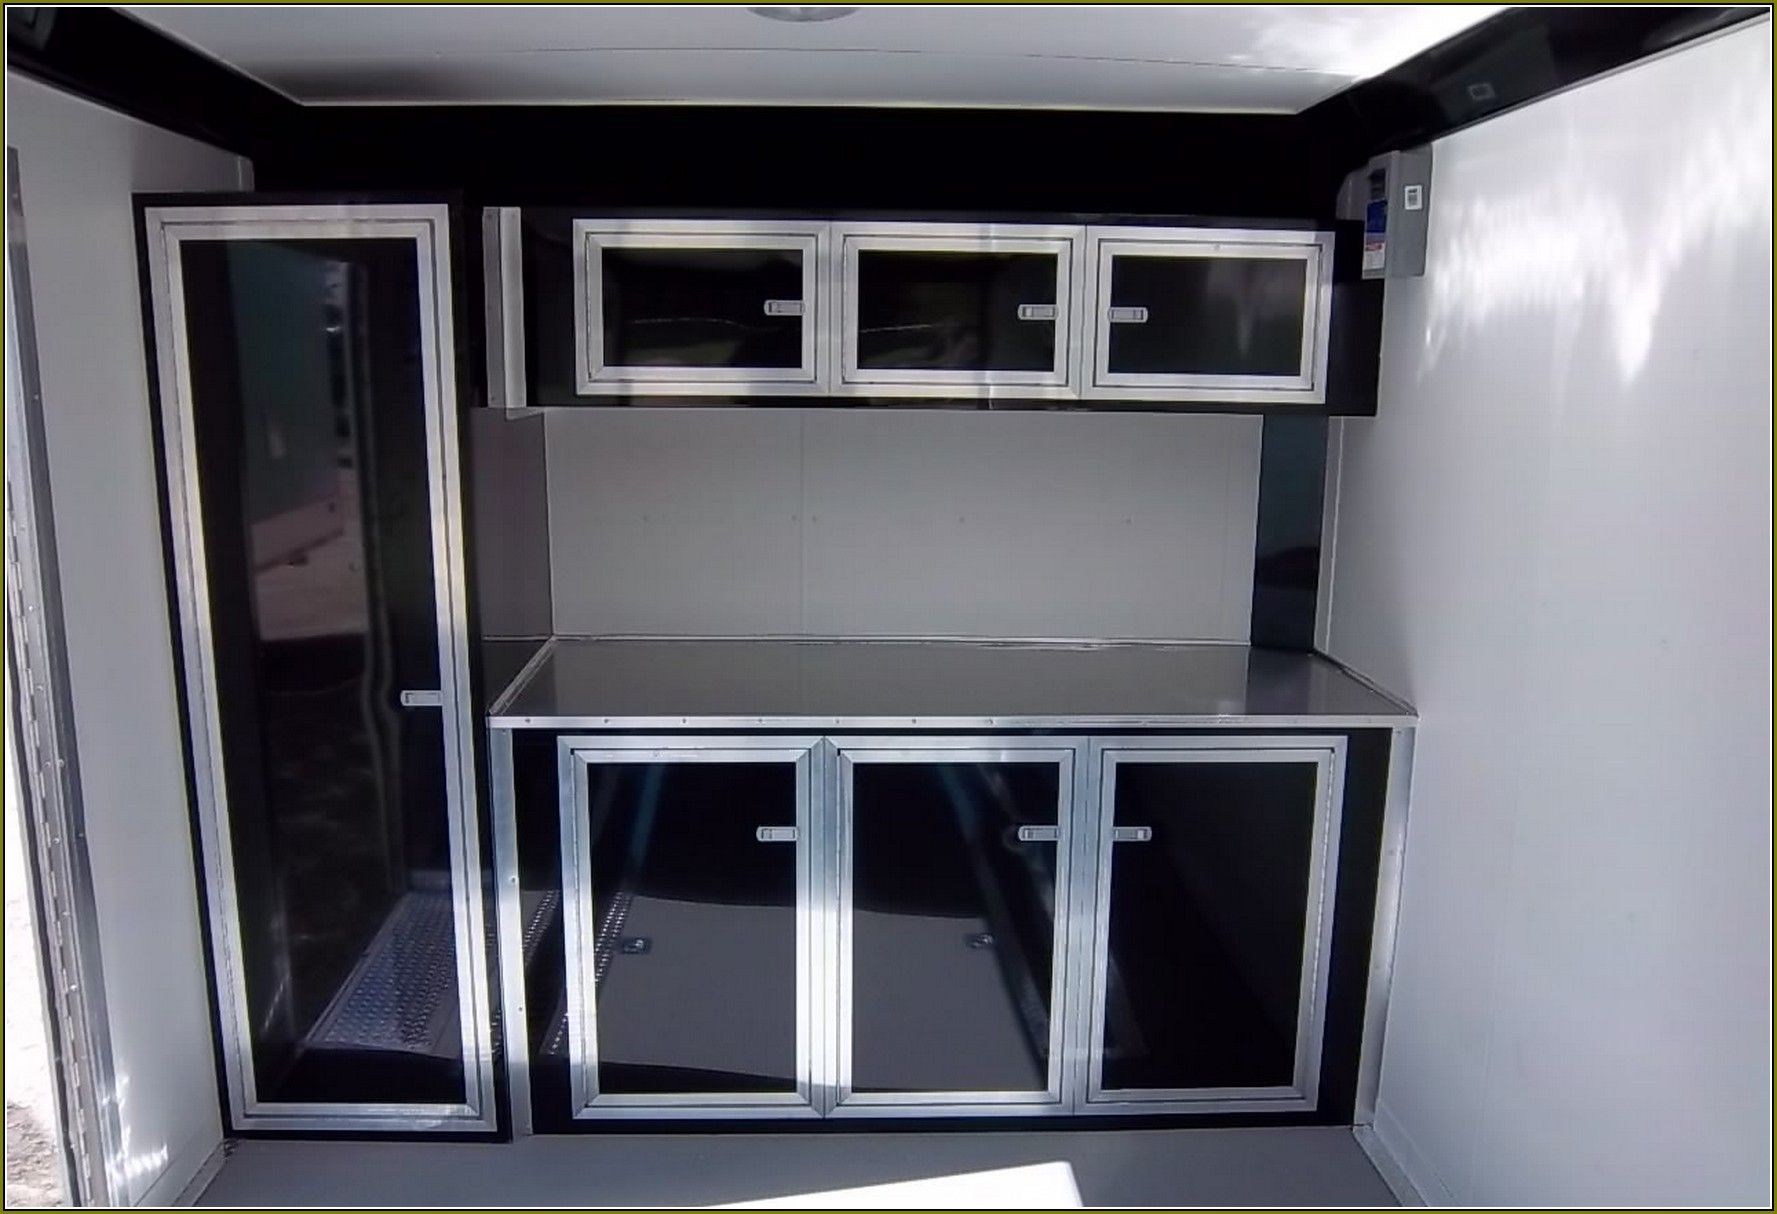 Designing Enclosed Cook House on furnished house, aluminum house, wrapped house, buried house, ford house, dump house, packed house, stored house, protected house, inside a house, heated house, storage house,